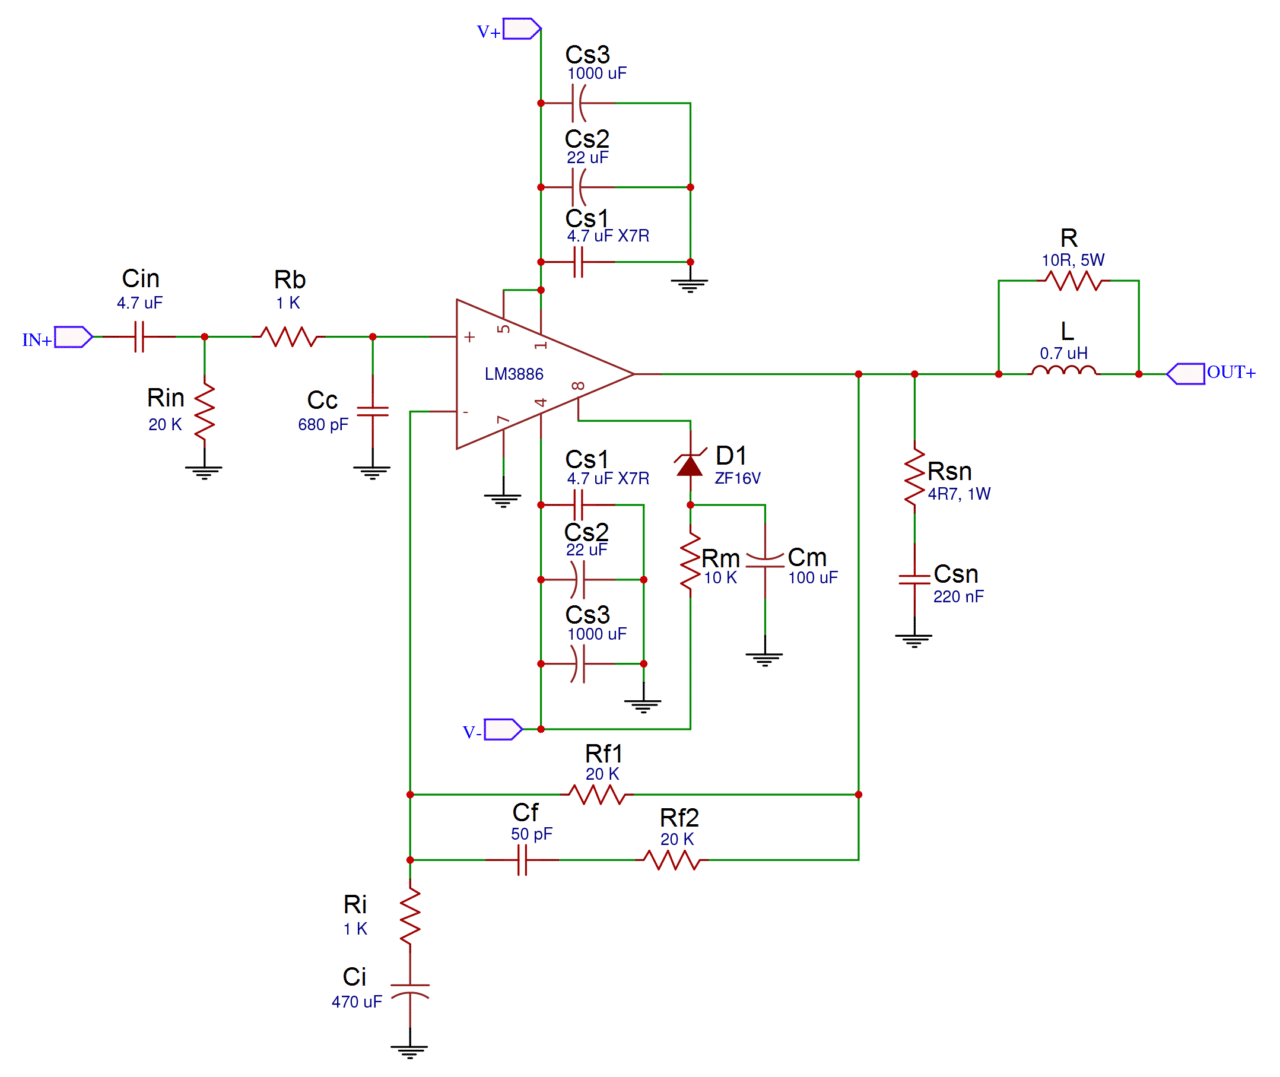 A Complete Guide To Design And Build Hi Fi Lm3886 Amplifier Iphone 5 Block Diagram Ill Be Using The Schematic Below Its Basically Same As One In Datasheet But With Optional Stability Components Included